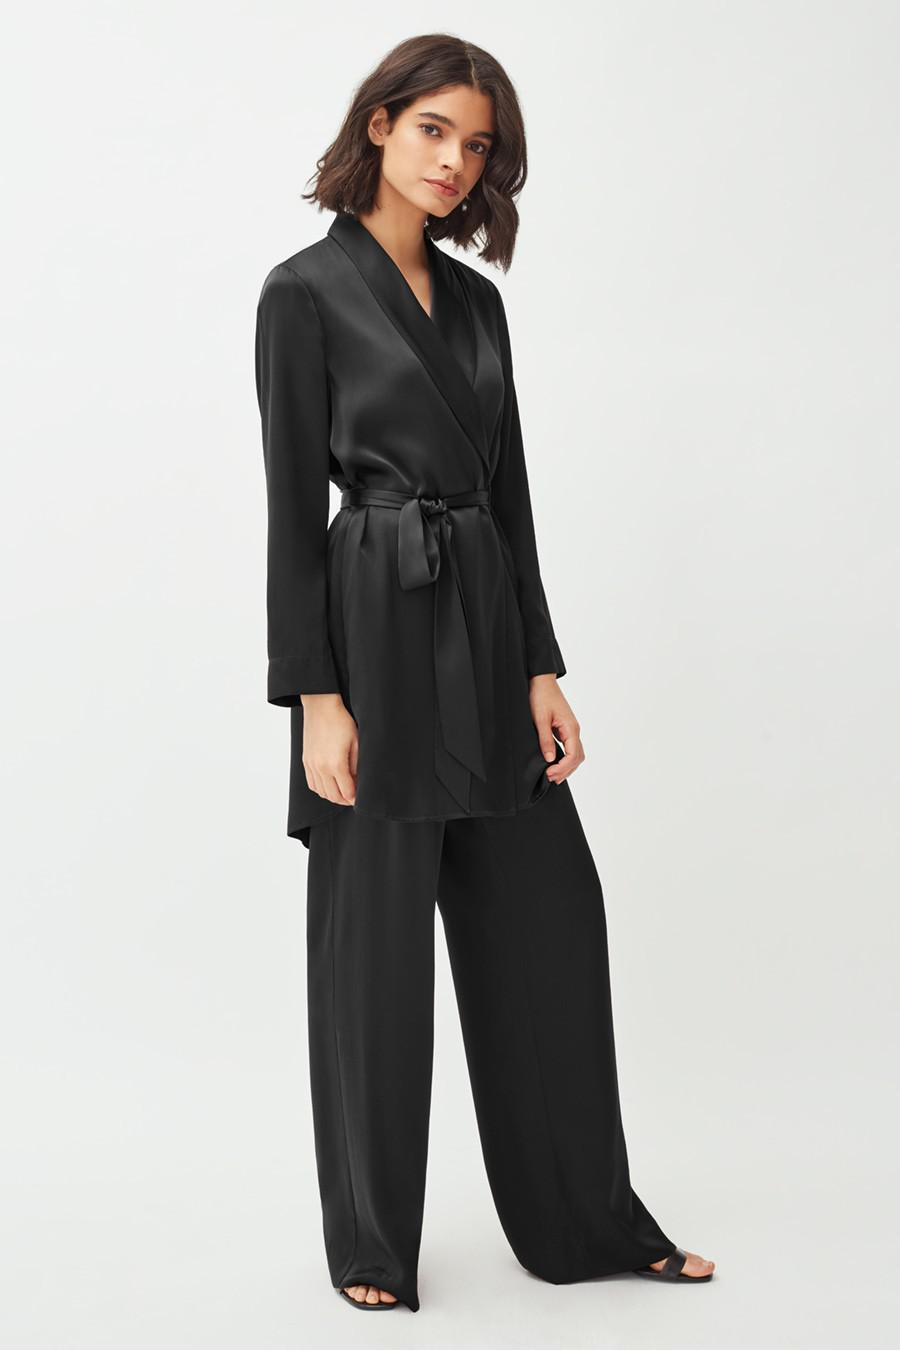 Women's Charmeuse Wide-Leg Pant in Black | Size: Large | Silk Charmeuse by Cuyana 3